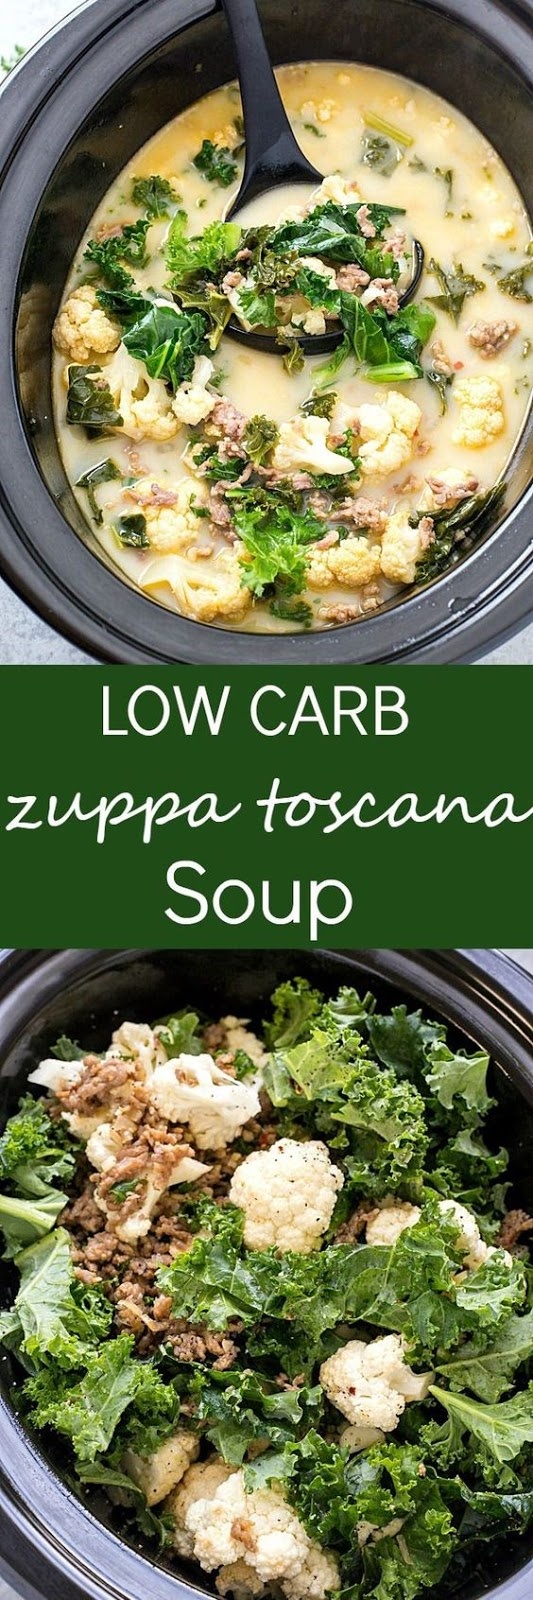 Slow Cooker Low Carb Zuppa Toscana Soup (Keto-Friendly)